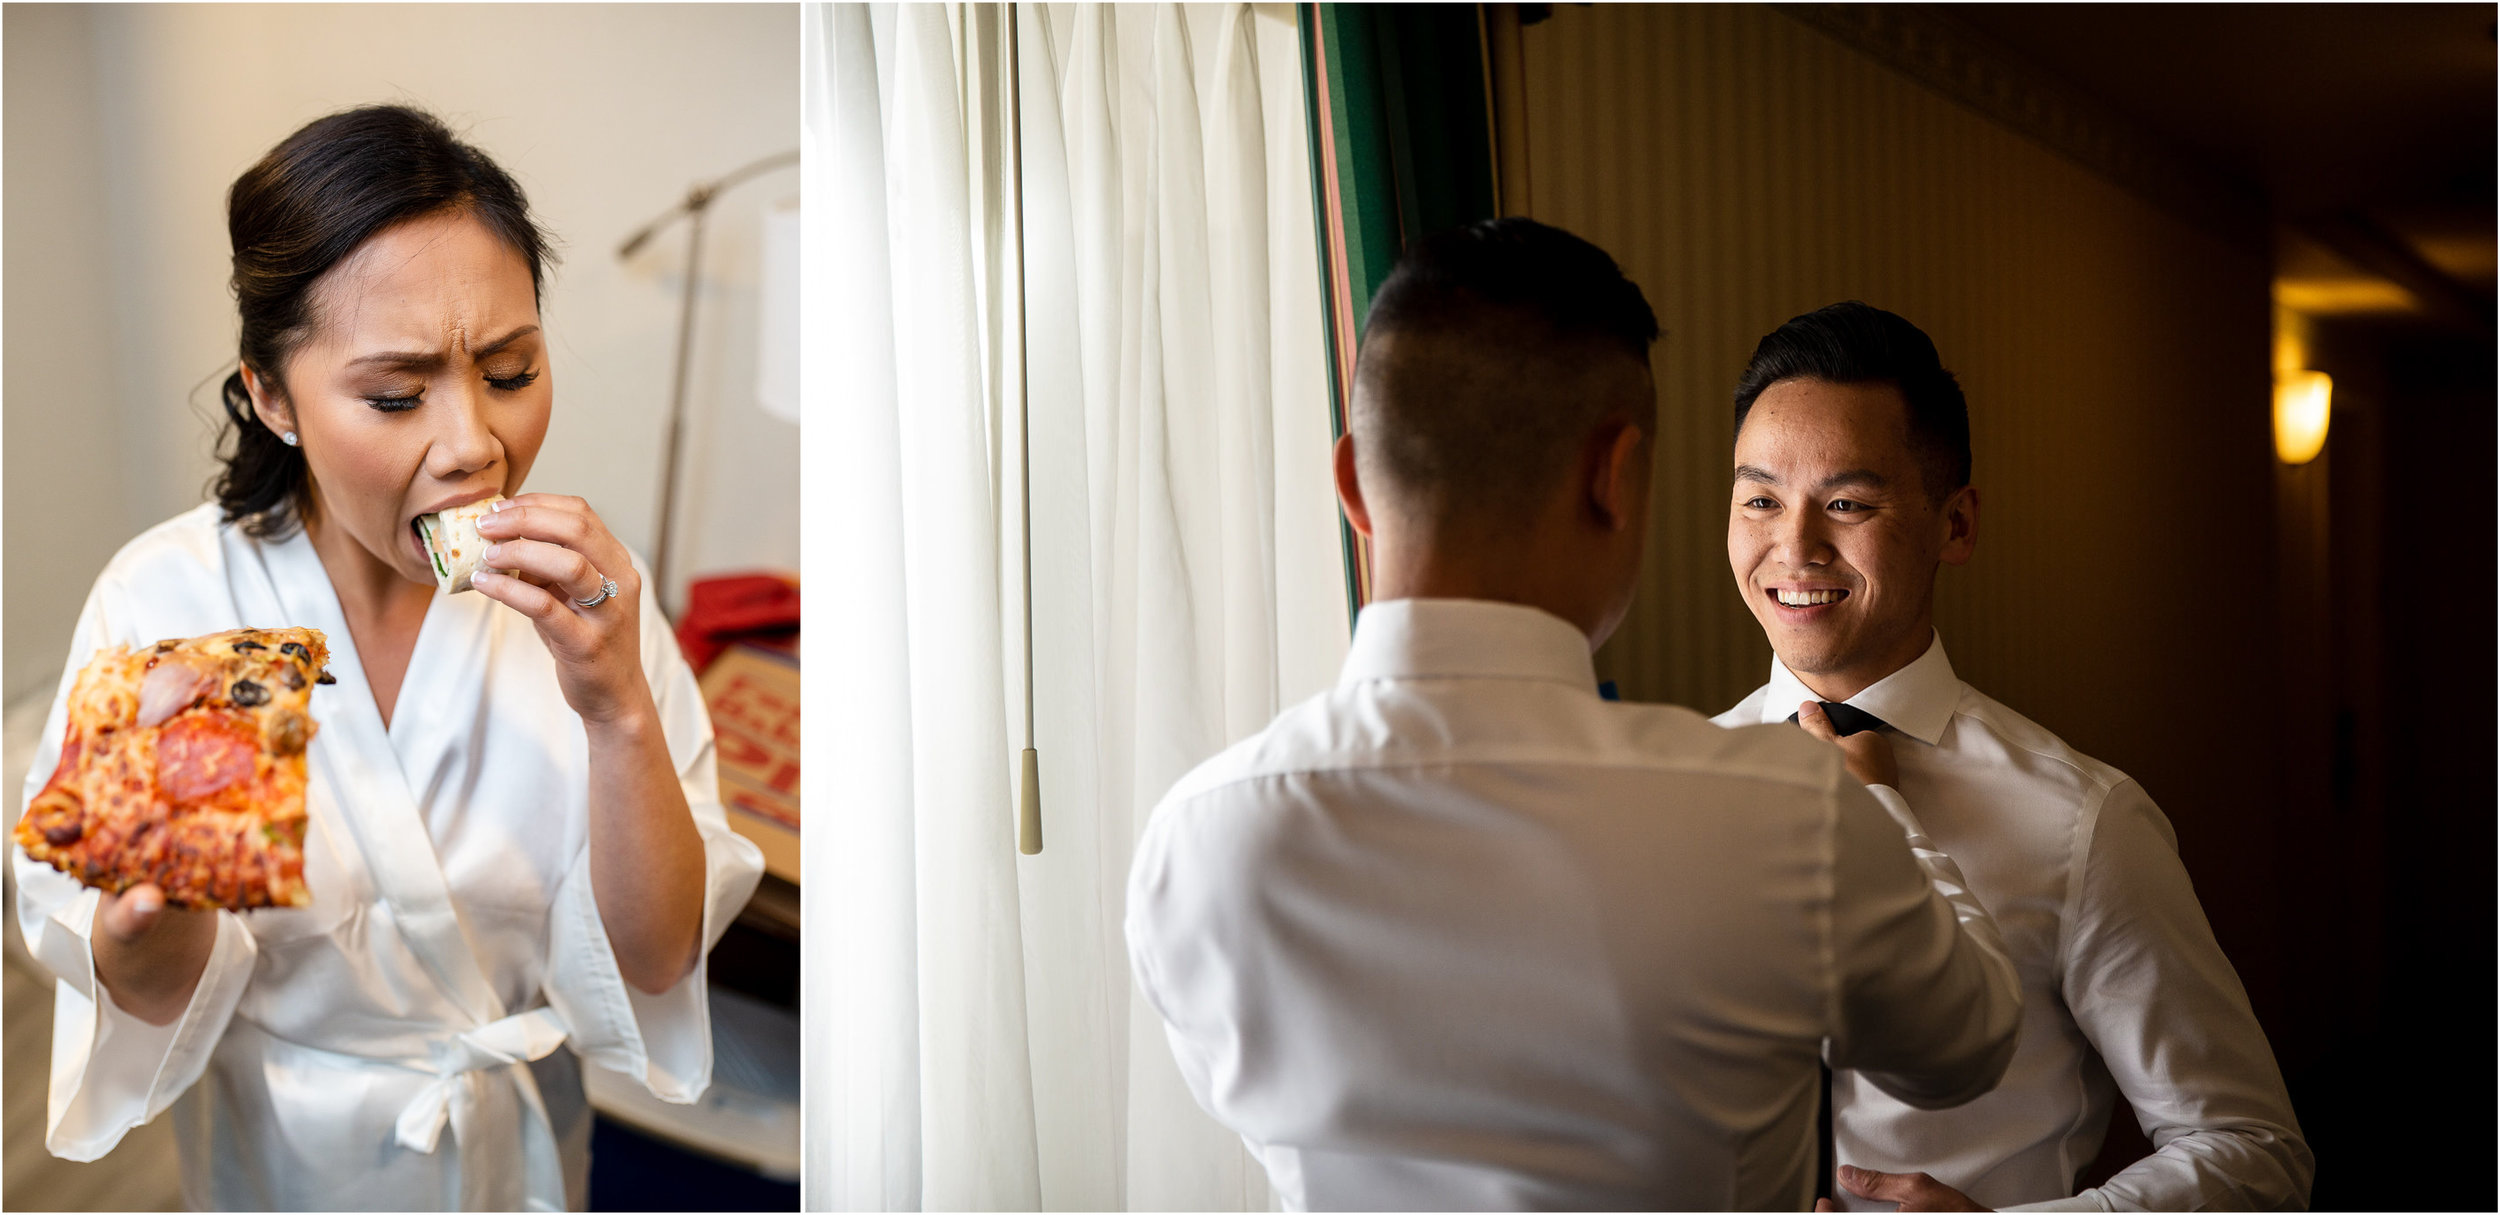 We all have our own way to prepare for a wedding. The Hilton Garden Inn in Pleasanton is conveniently located near popular wedding venues in the East Bay. We started our day with getting-ready photos there.